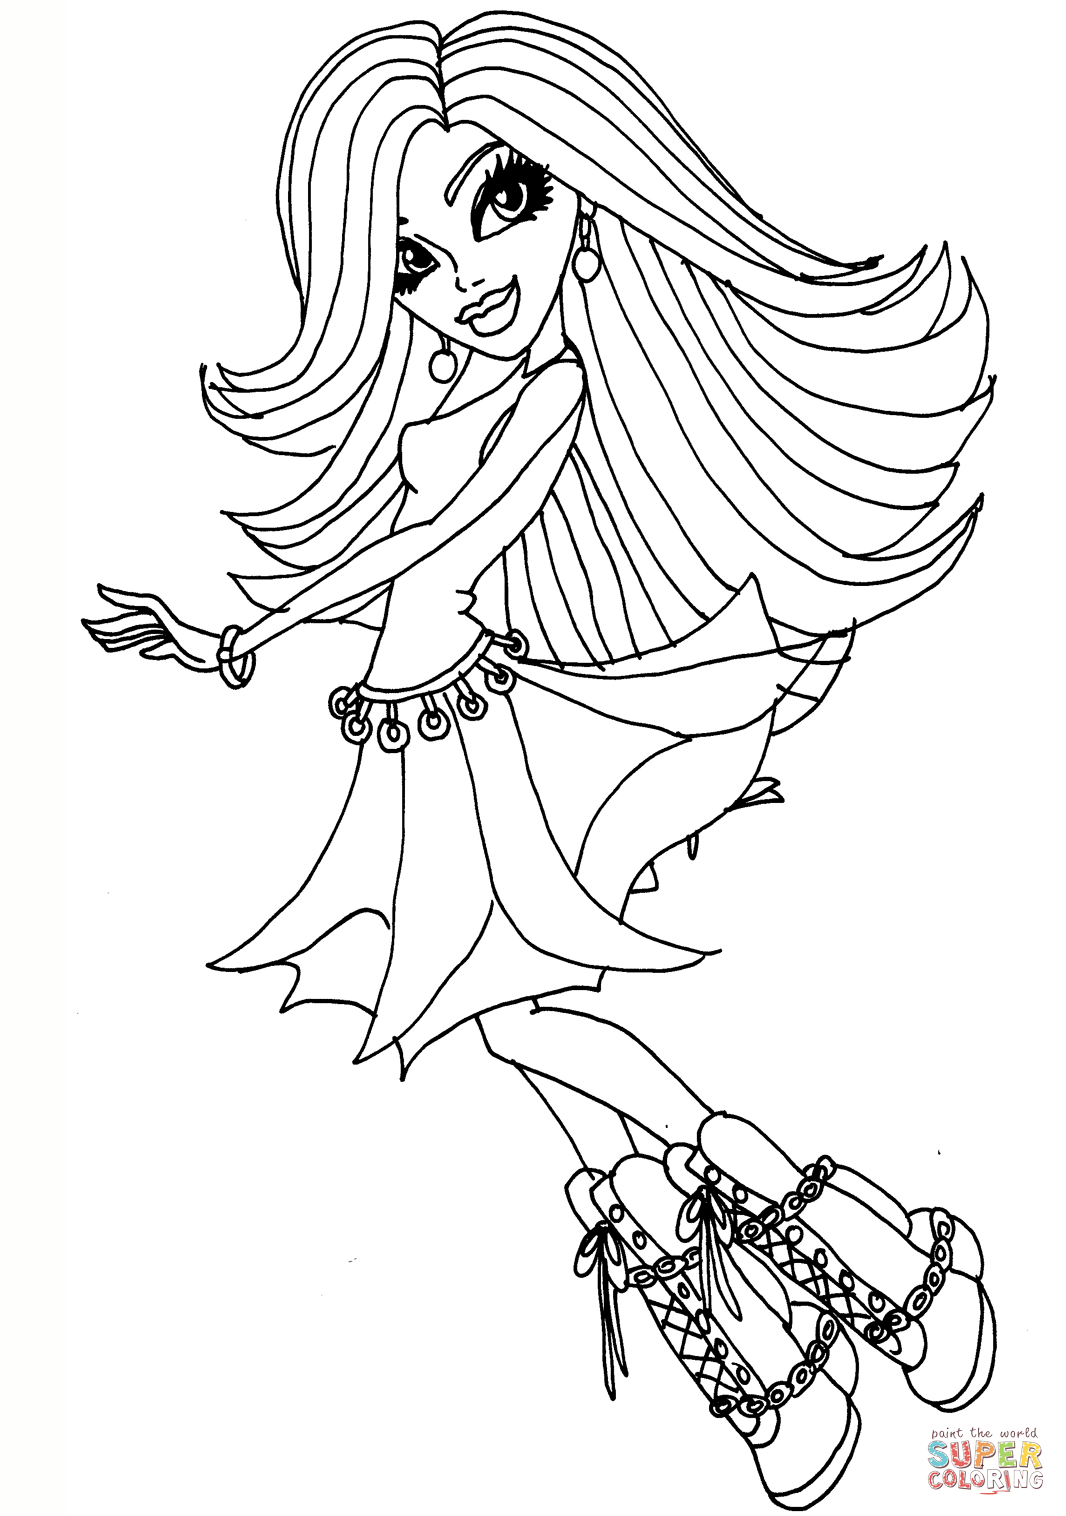 free colouring pages monster high coloring pages monster high coloring pages free and printable pages colouring high monster free